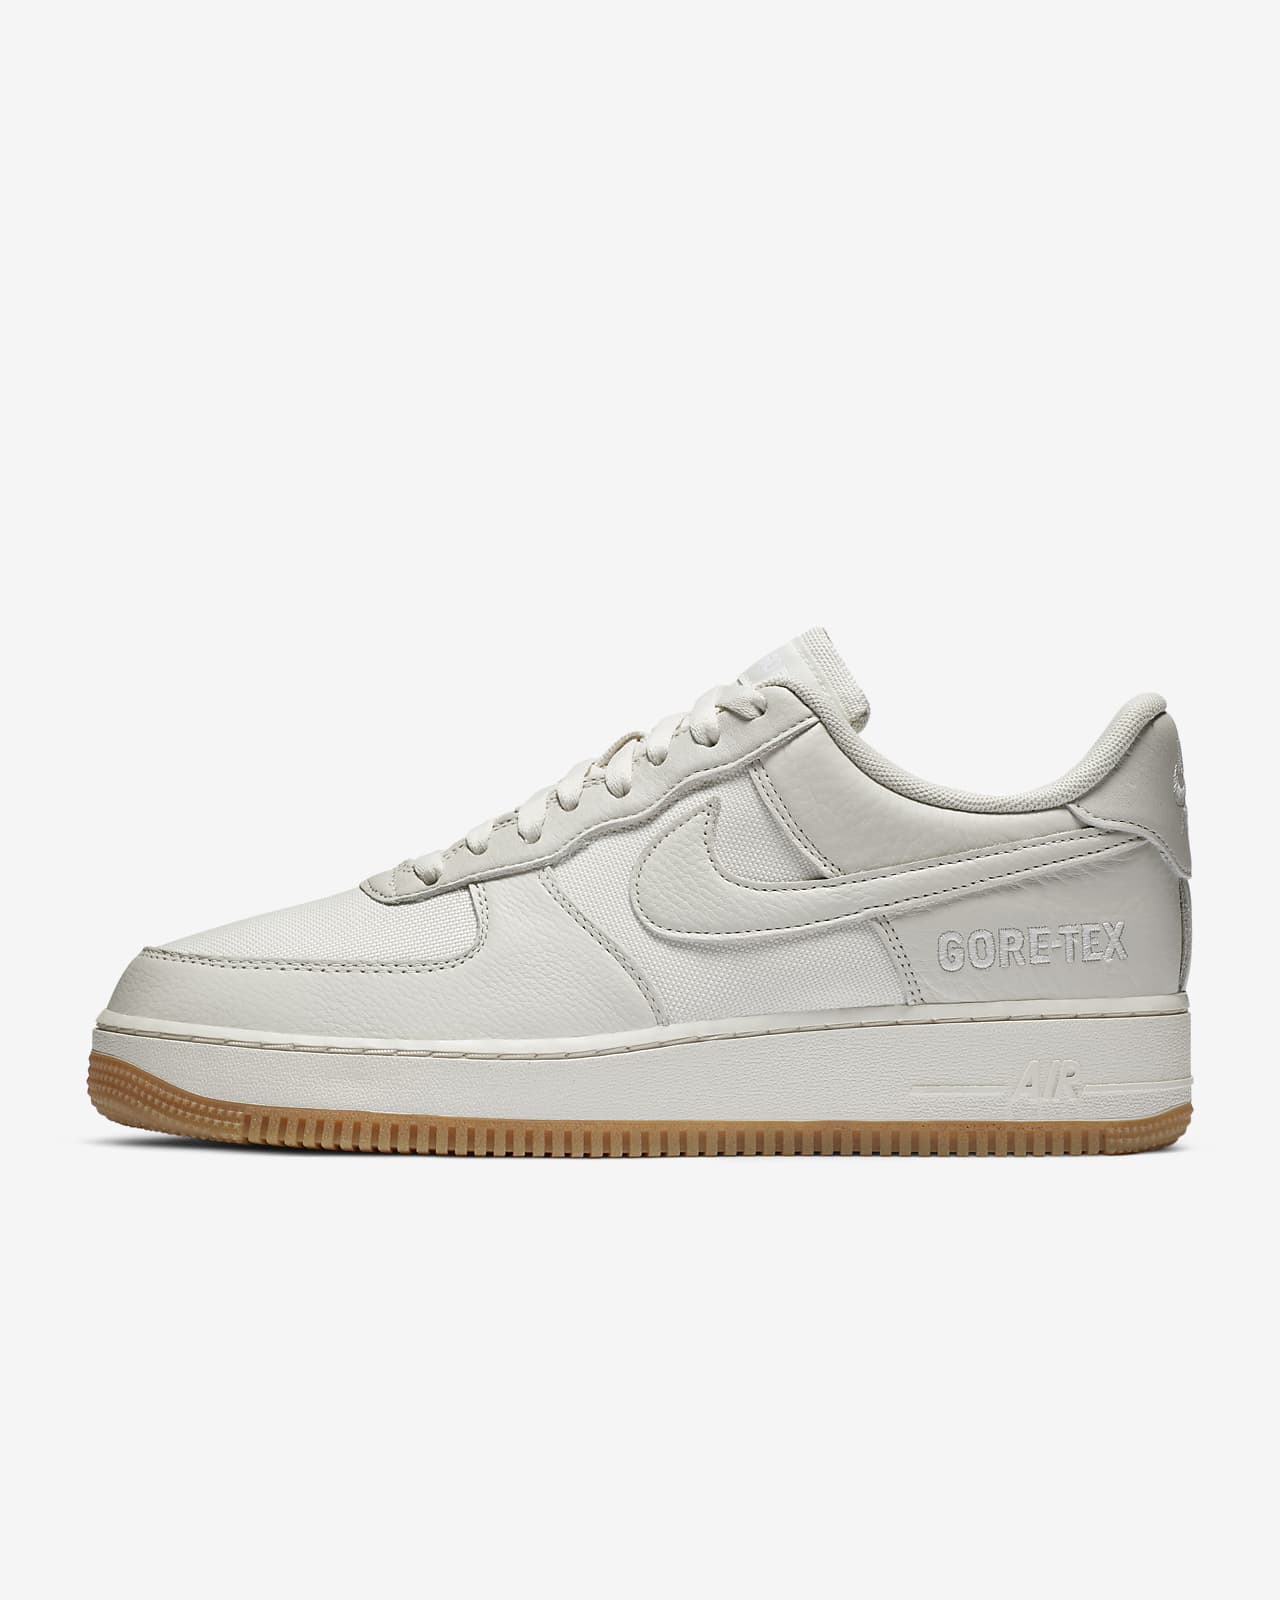 Nike Air Force 1 Low GORE-TEX Men's Shoe